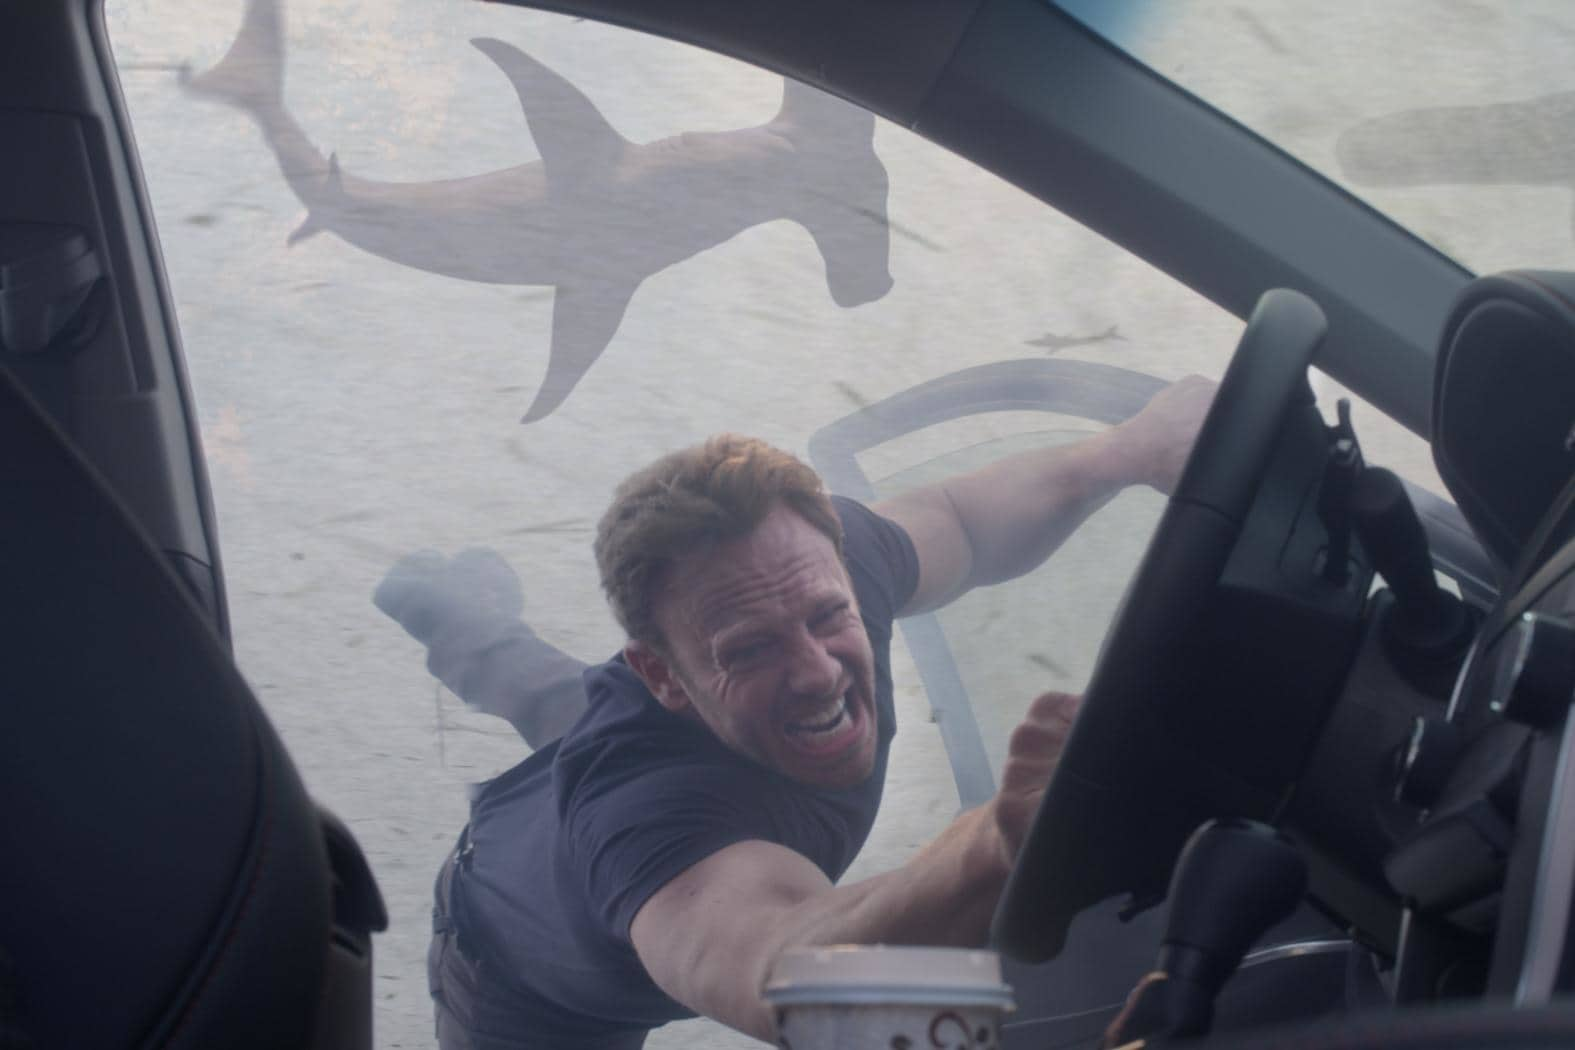 Sharknado' is absurd, so let's look back at its hilarious origin story -  The Washington Post